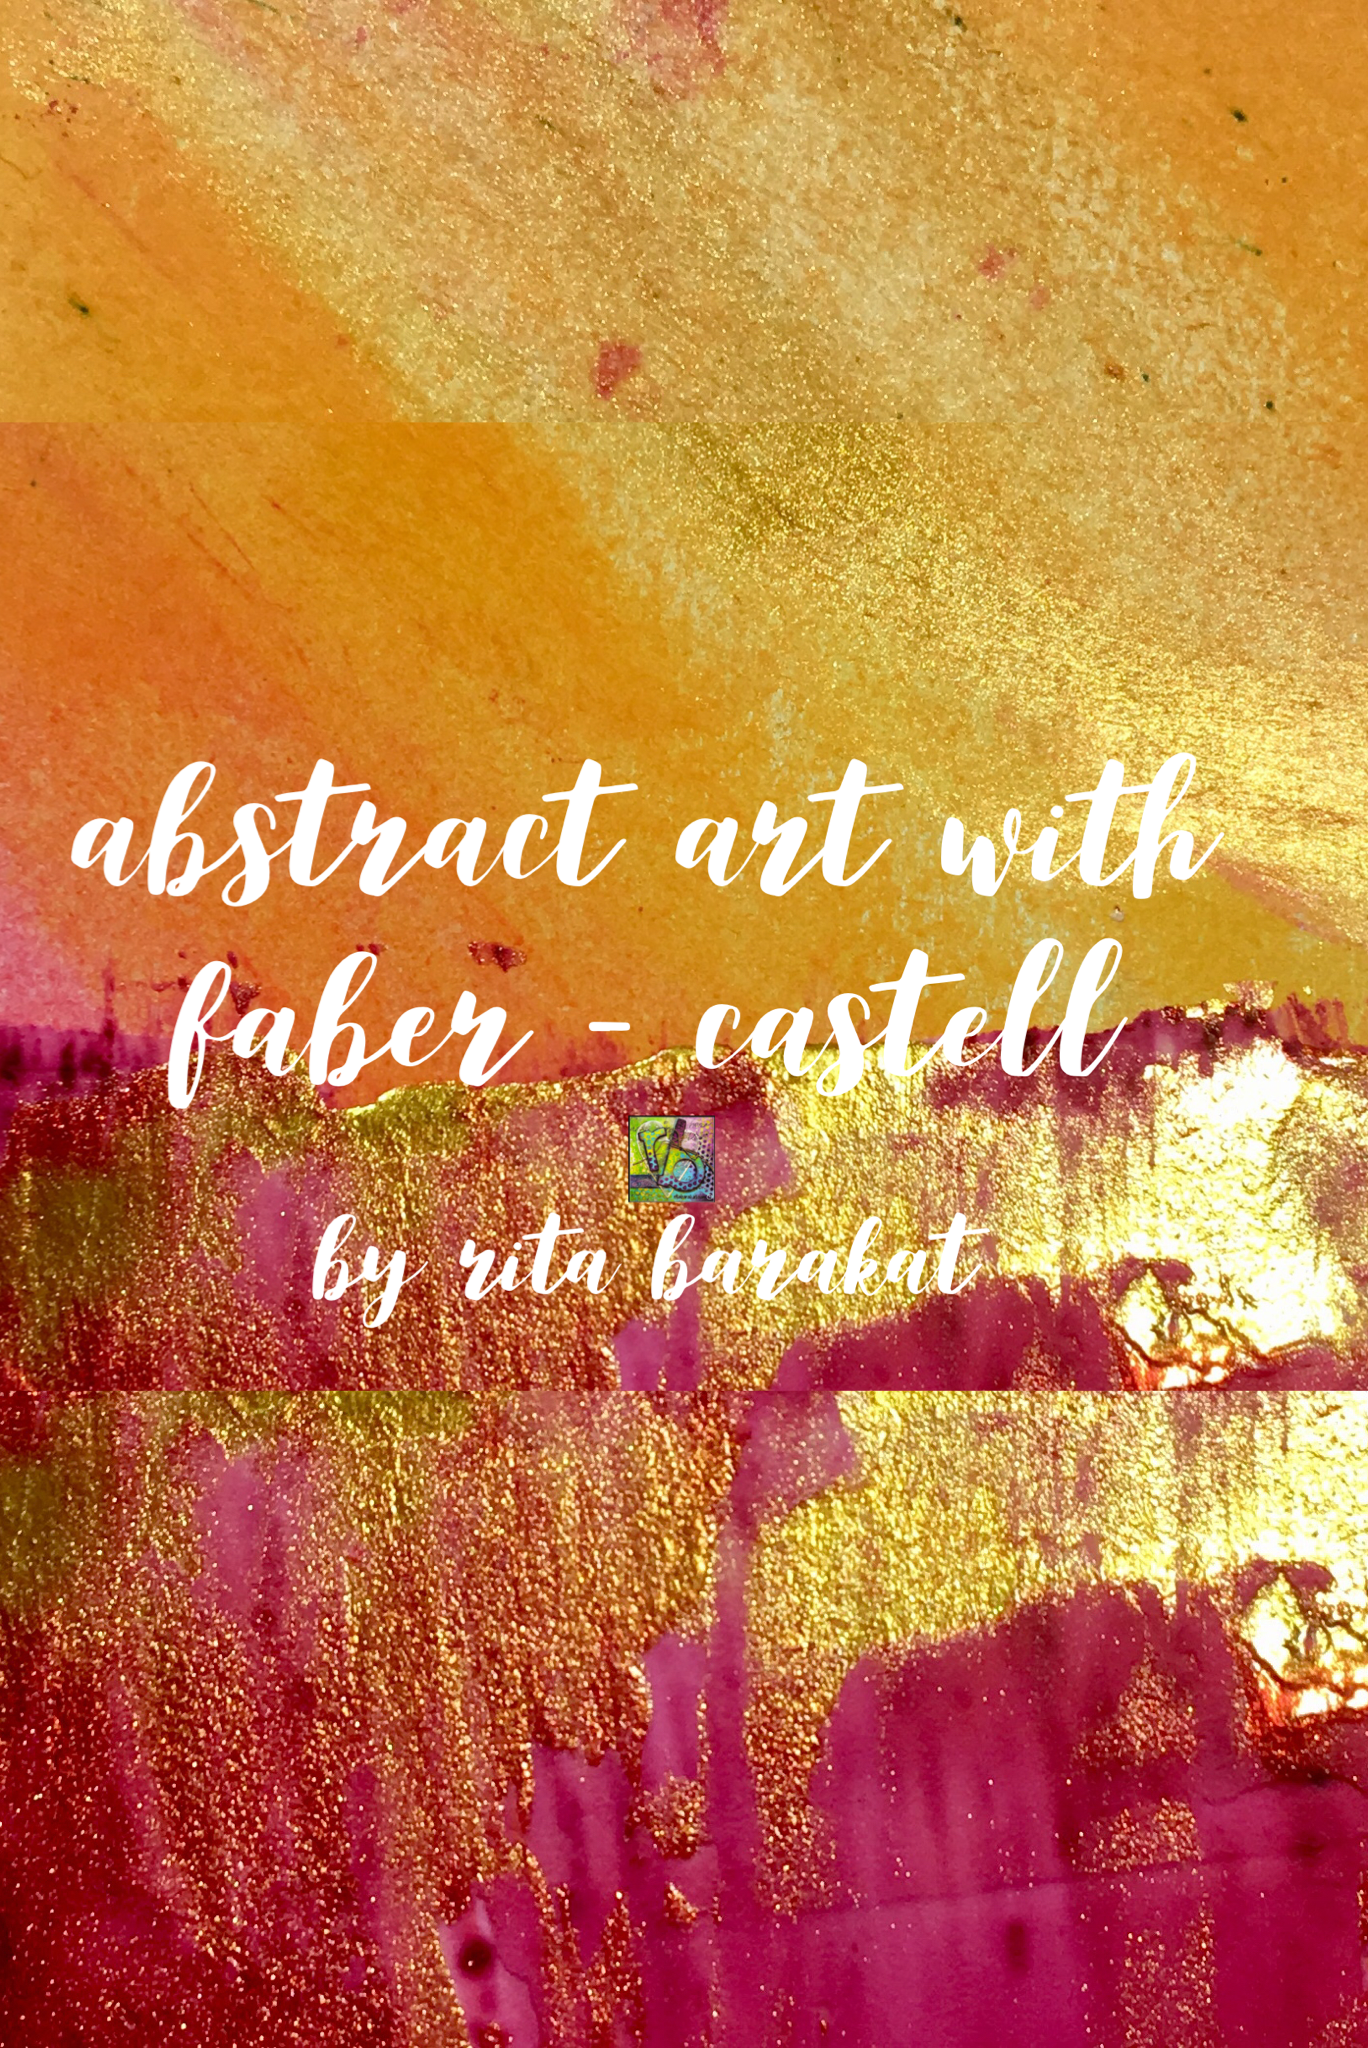 Abstract Art - Lets hop with Faber-Castell! Mixed Media RitaBarakat.com